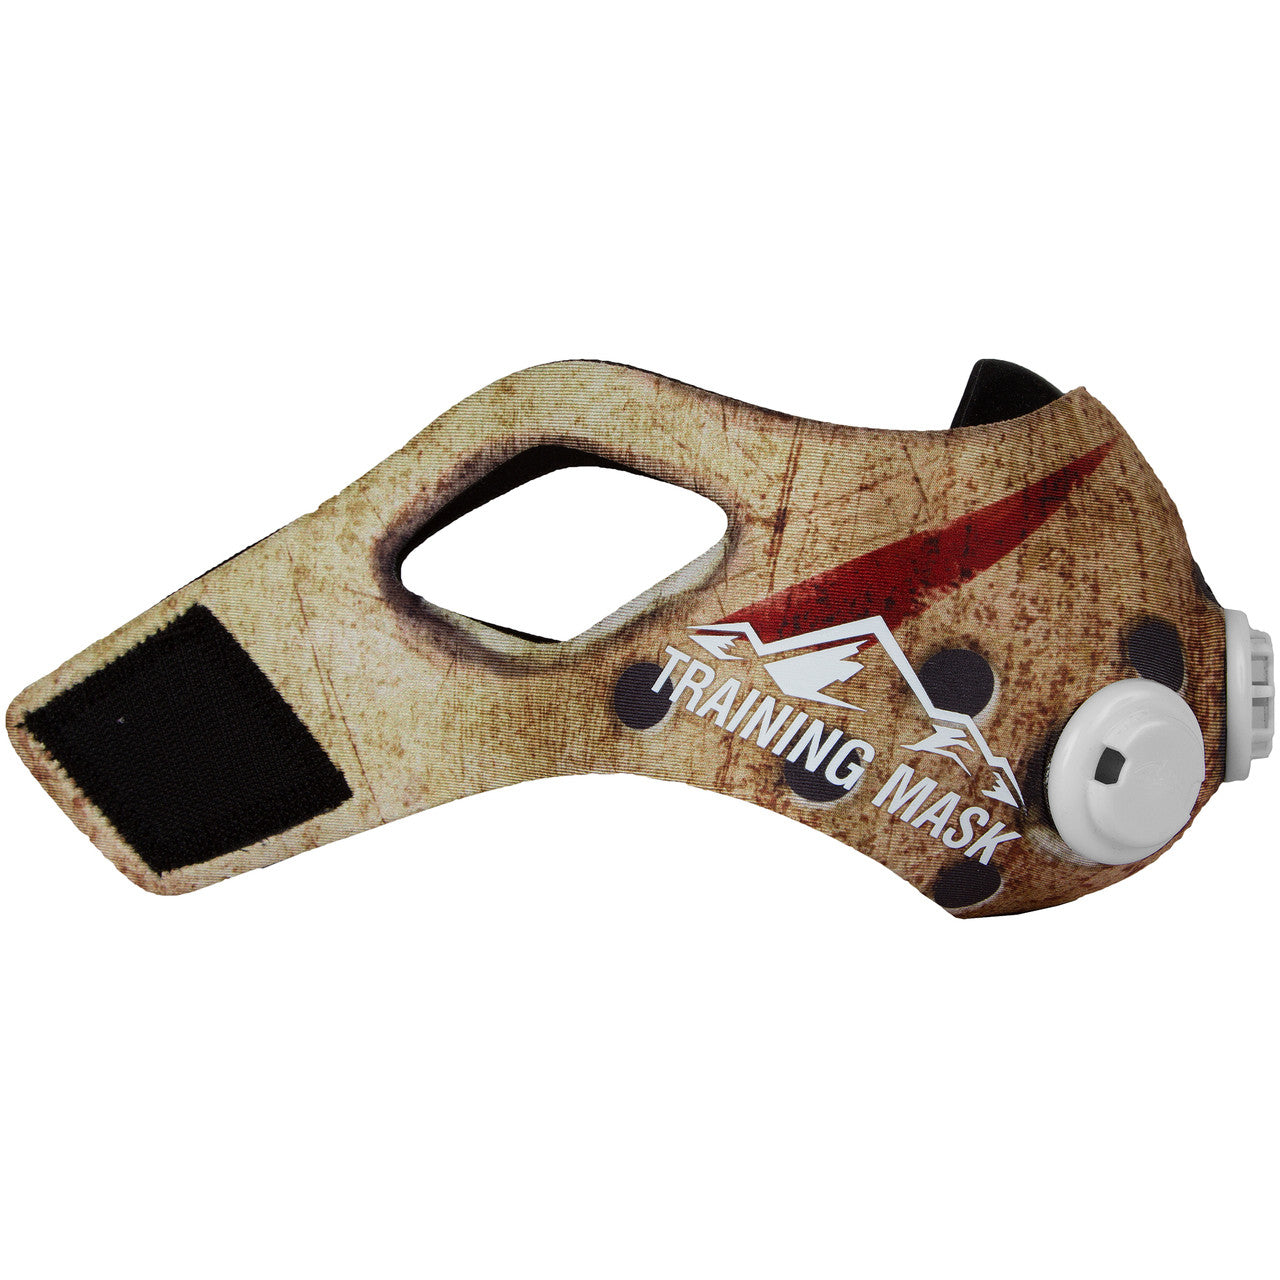 Training Mask 2.0 Jayson Sleeve